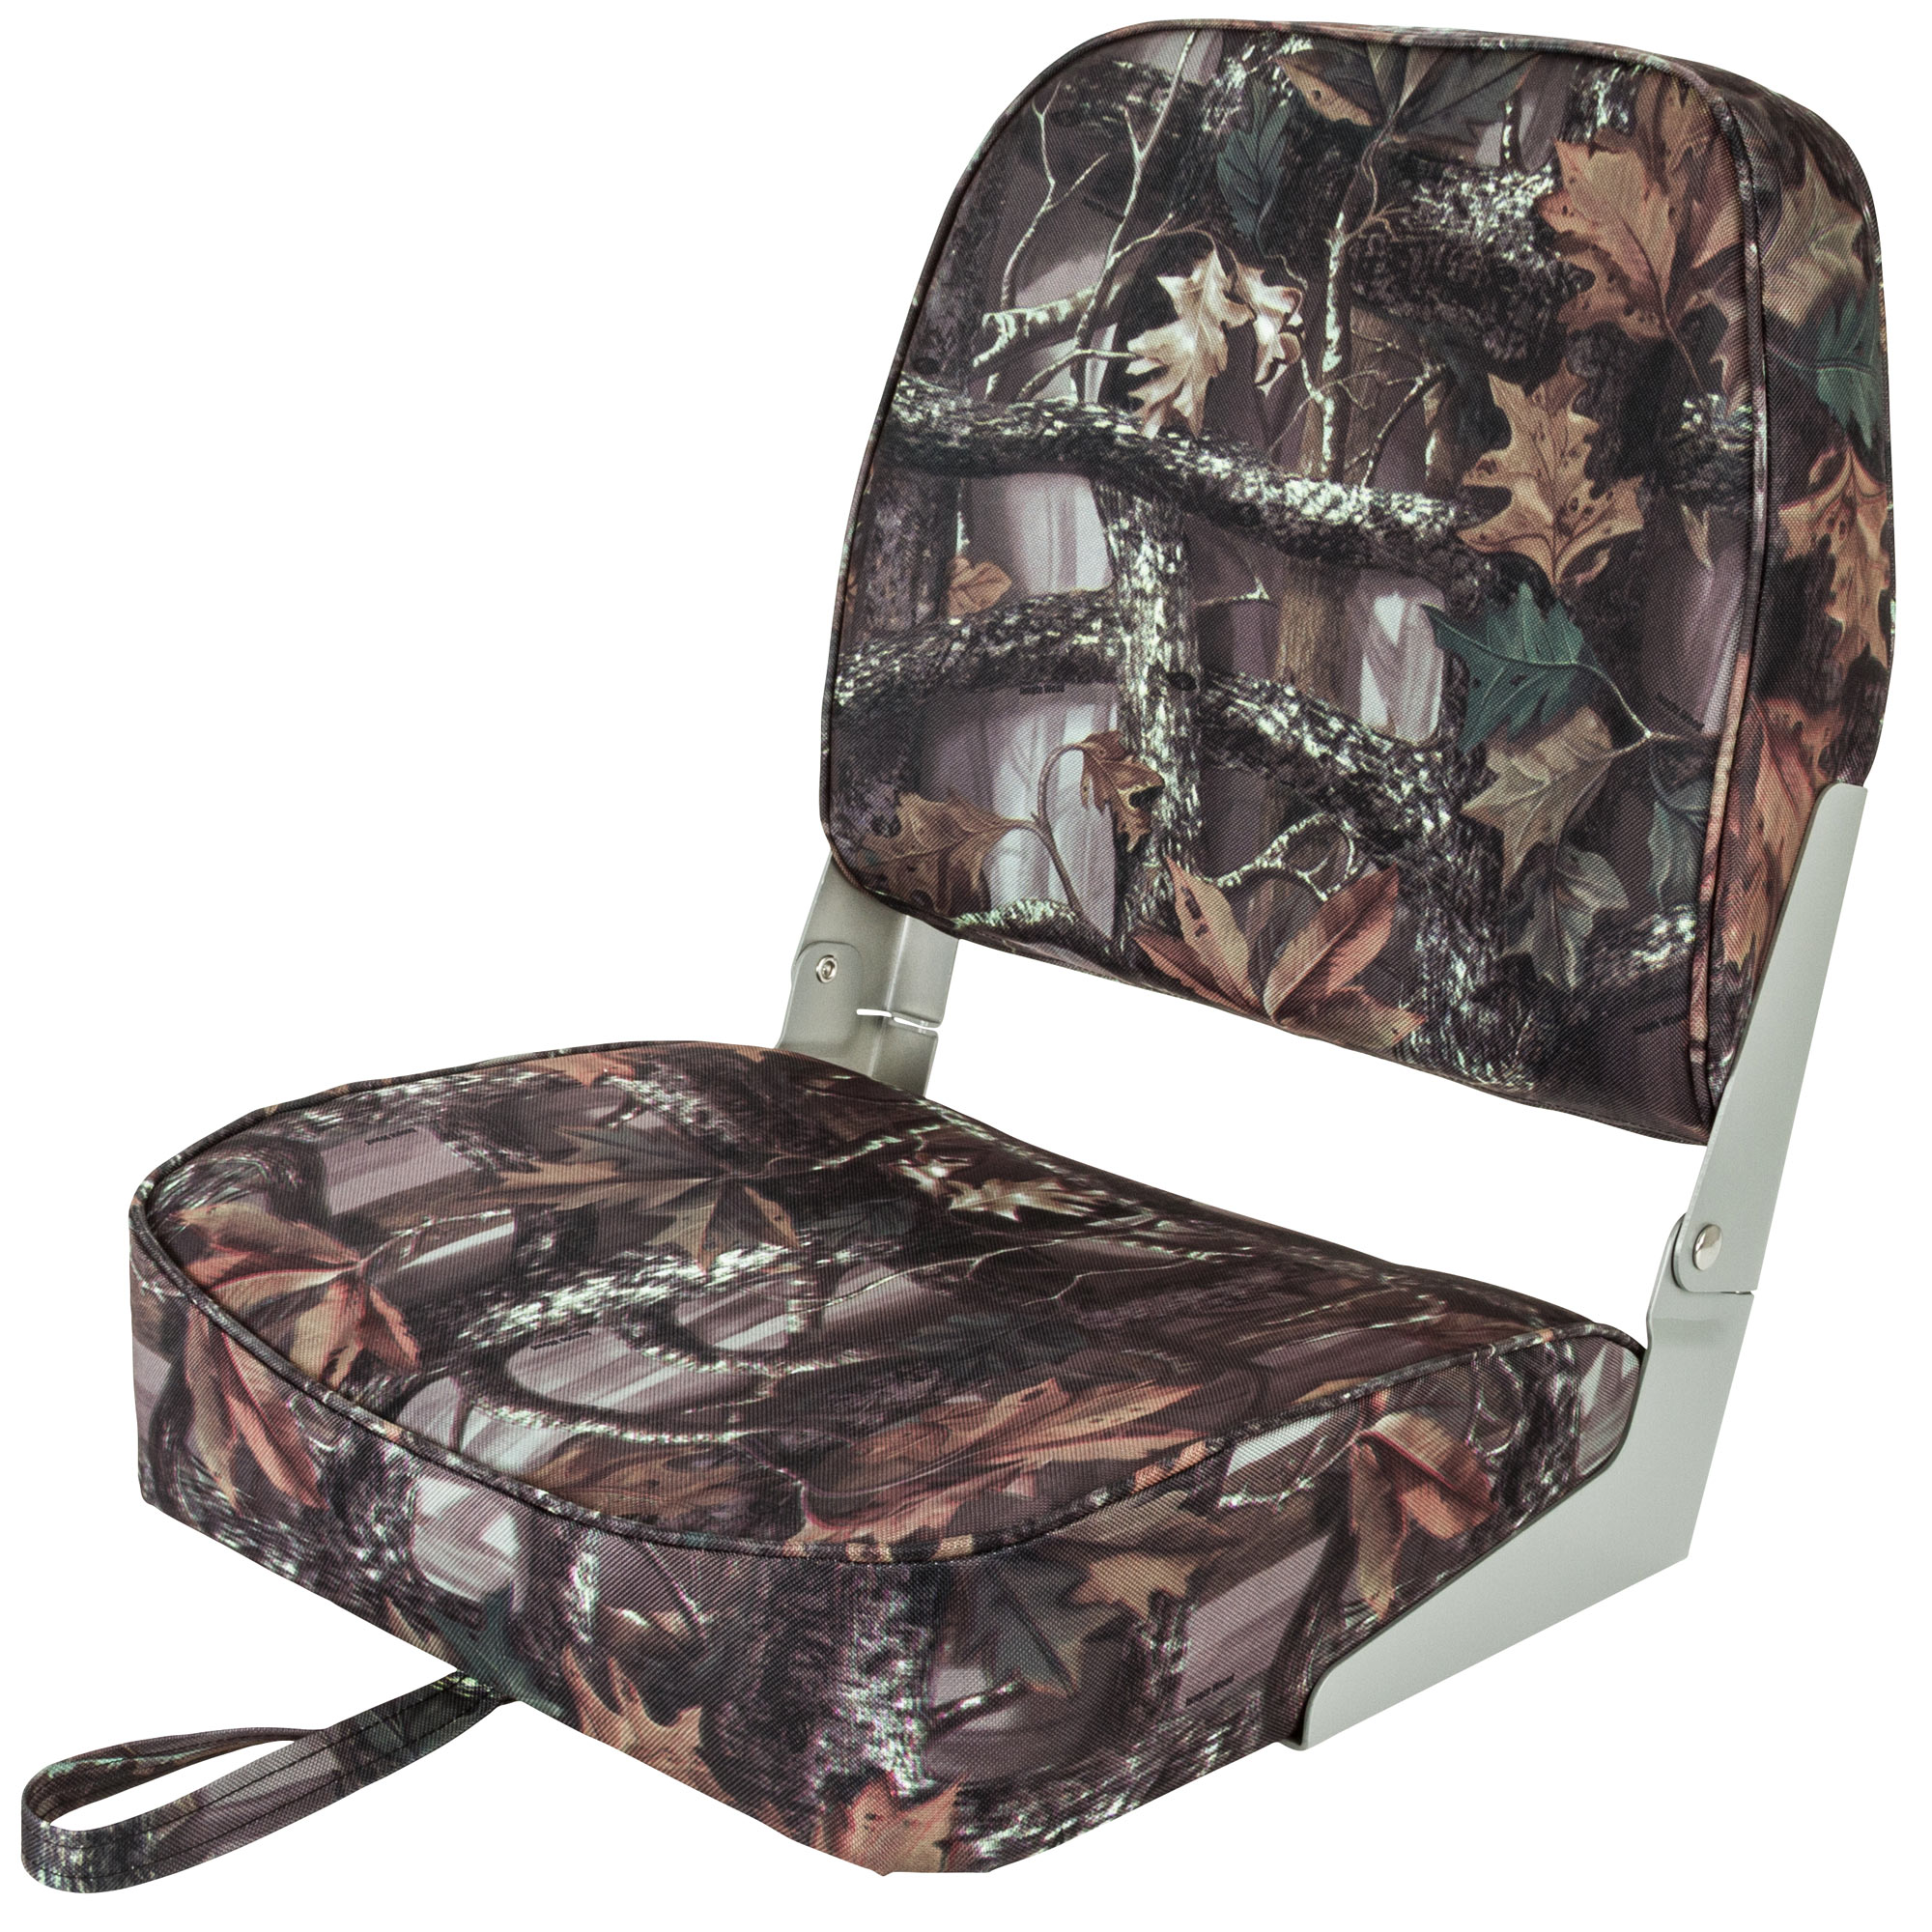 duck hunting chair outdoor side chairs kill shot folding camo boat seat fishing camouflage